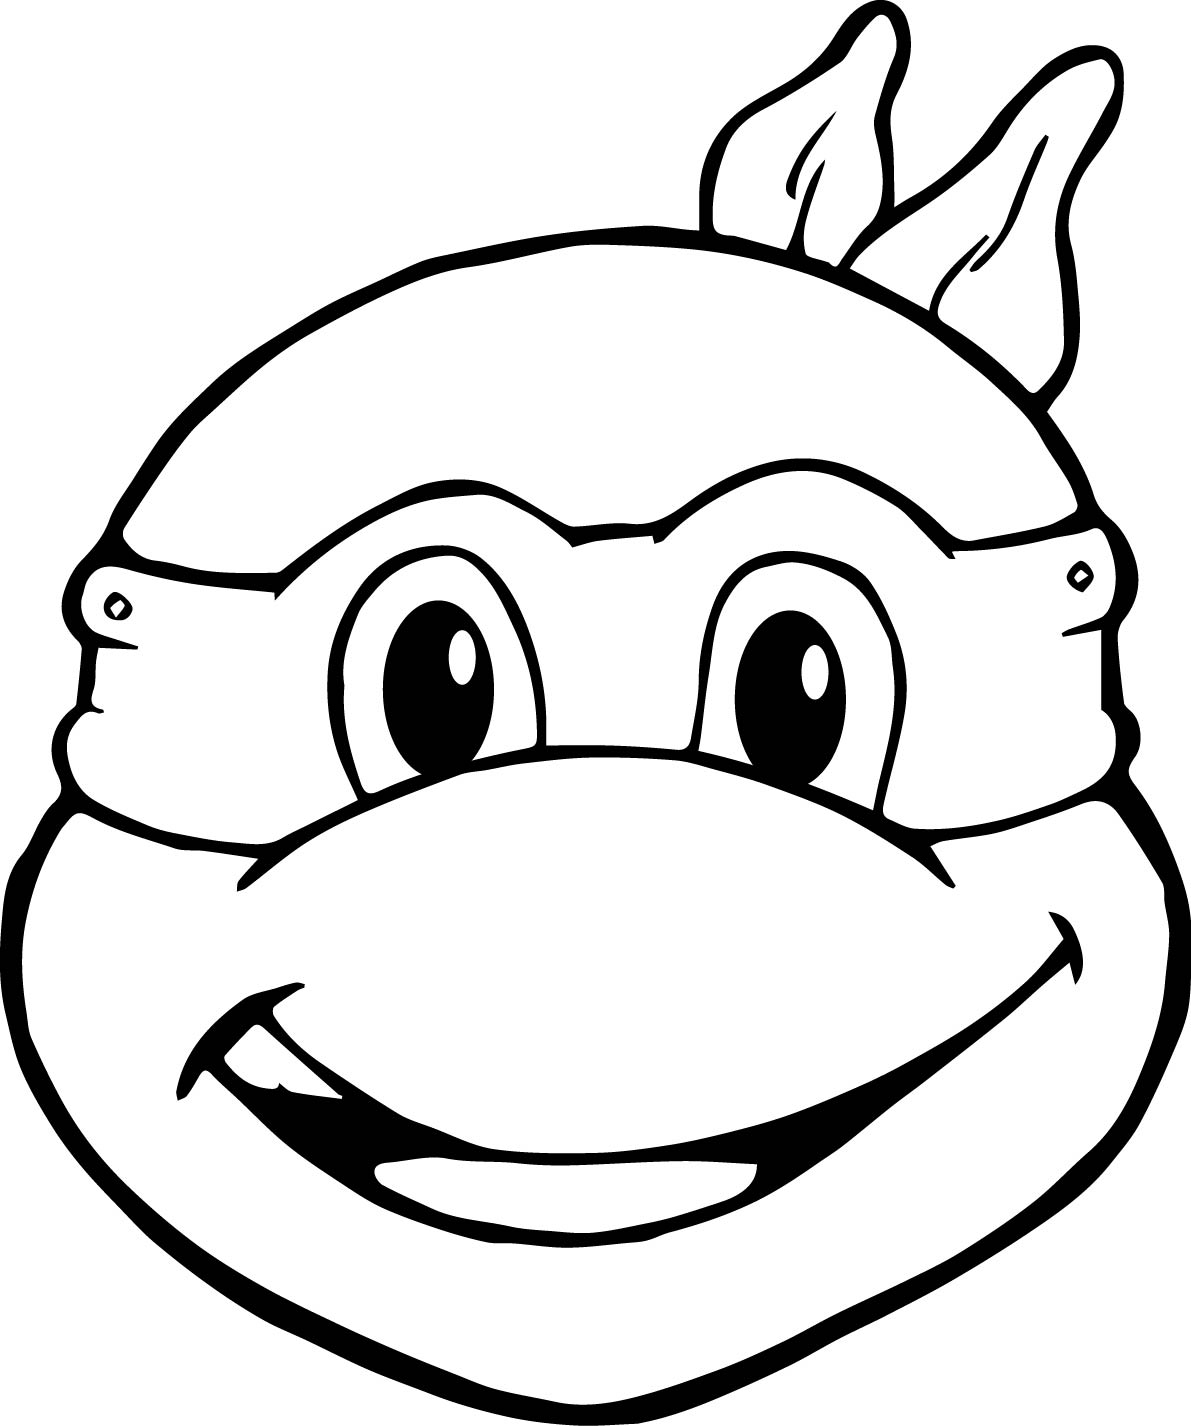 Ninja turtle face drawing at free for for Tortoise mask template